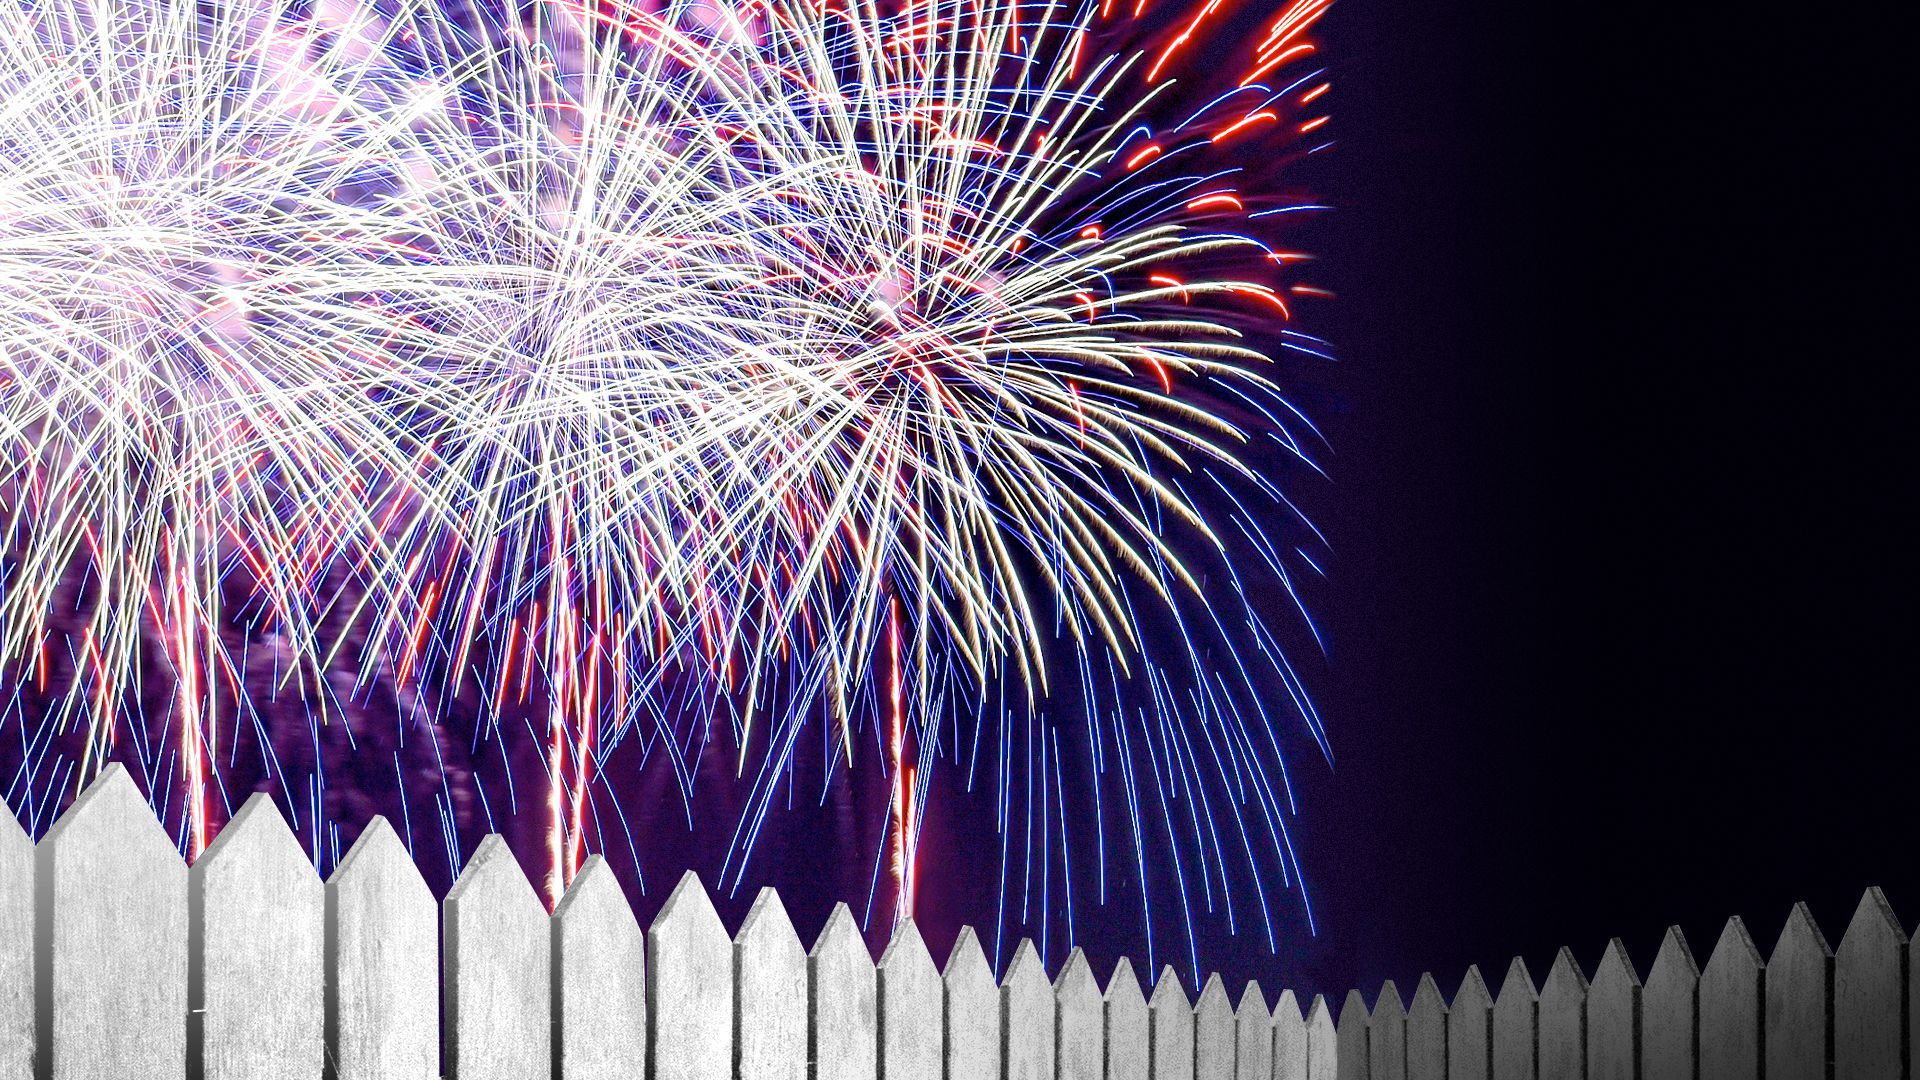 Illustration of fireworks going off behind a fence. On the other side, it's dark.